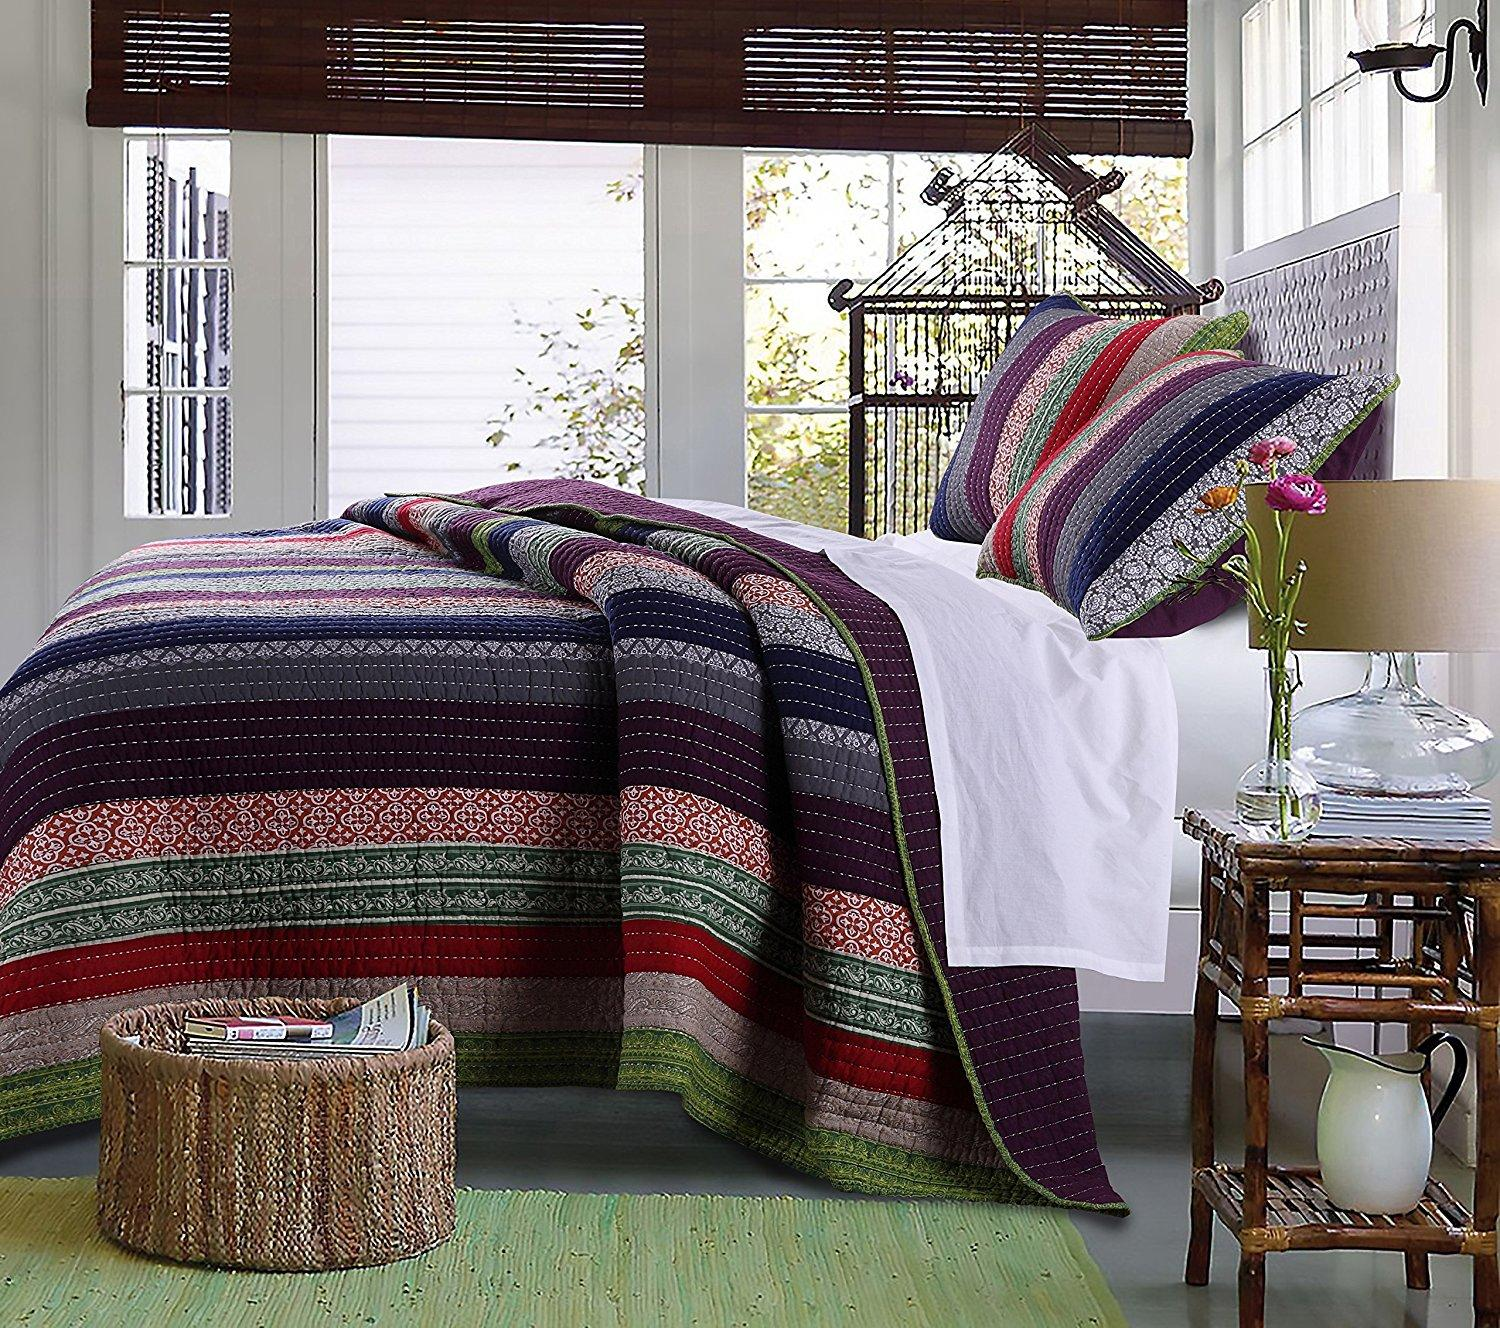 3-Piece Greenland Home Marley Quilt King Set